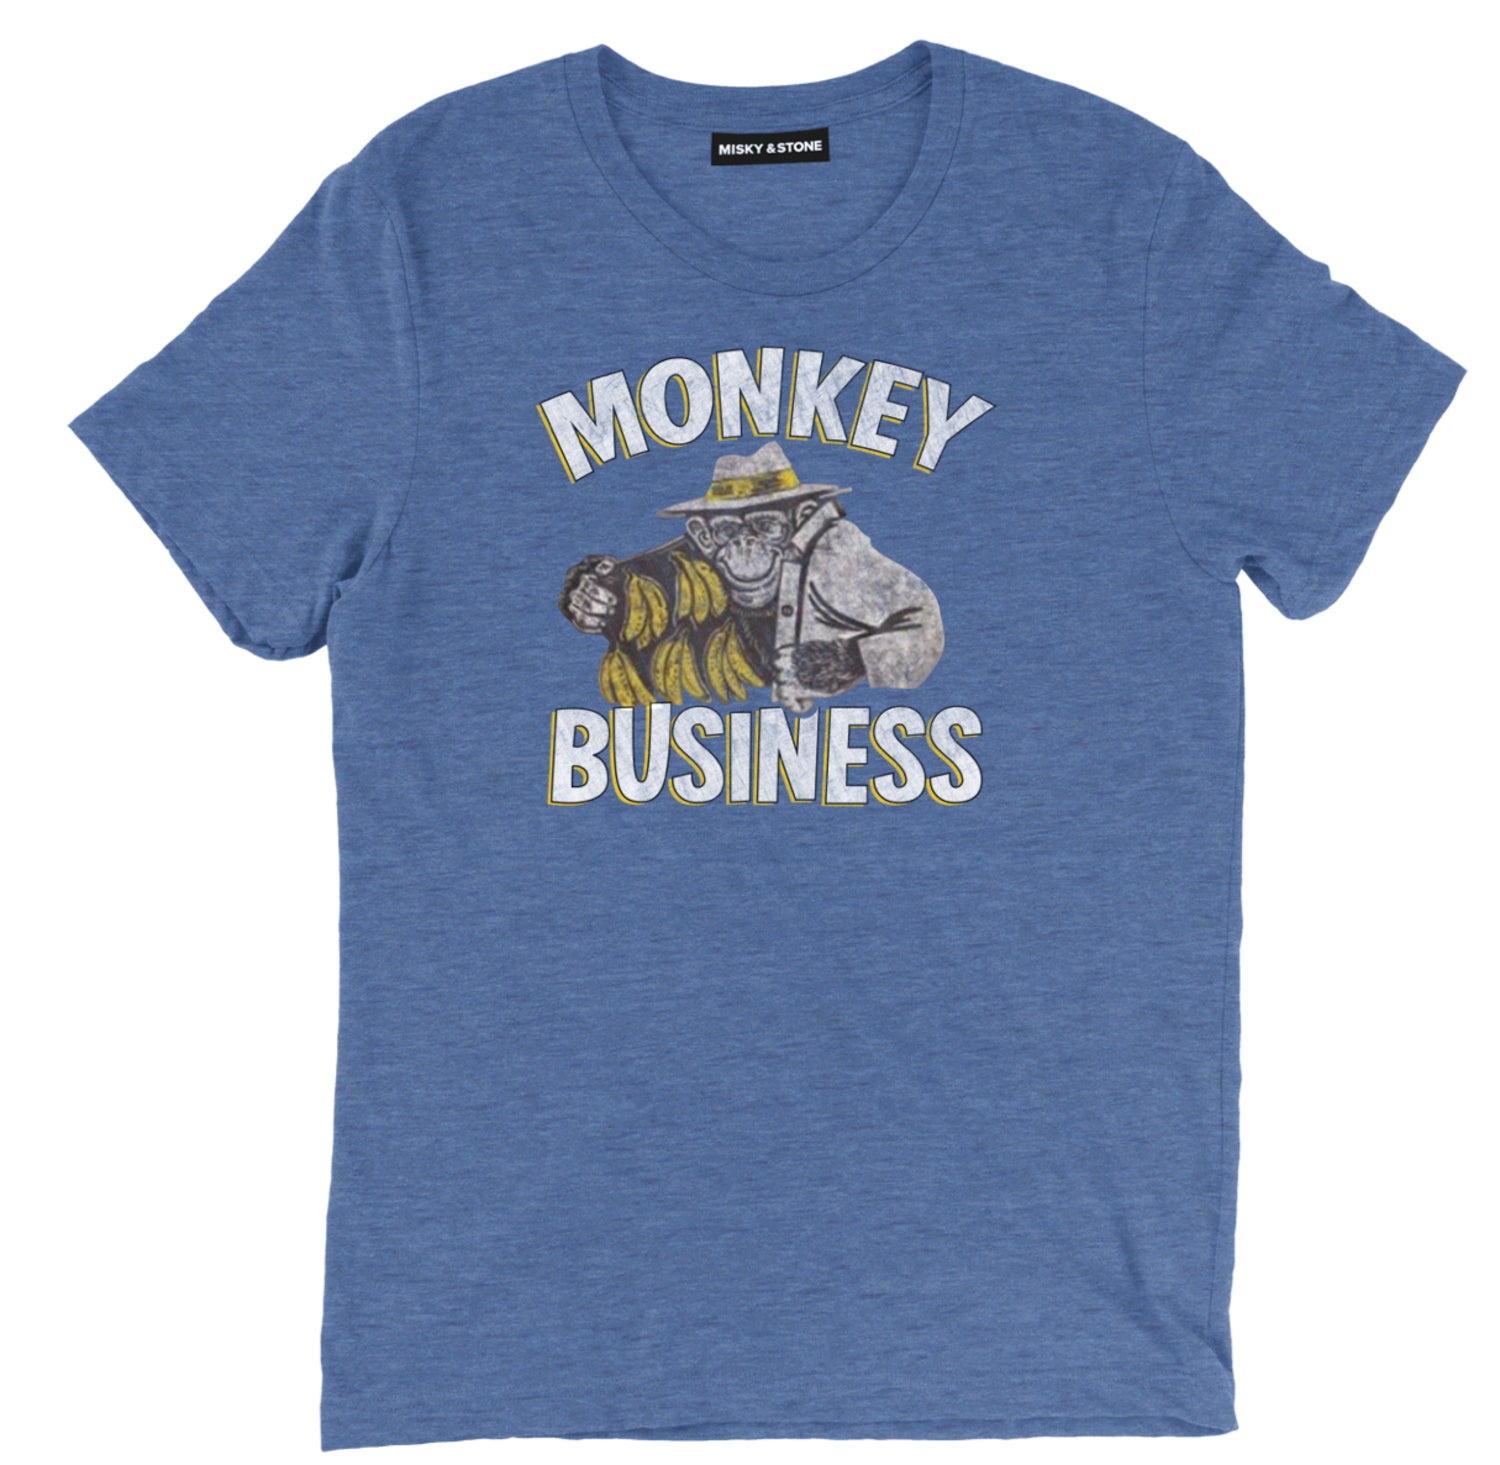 Monkey Business Tee